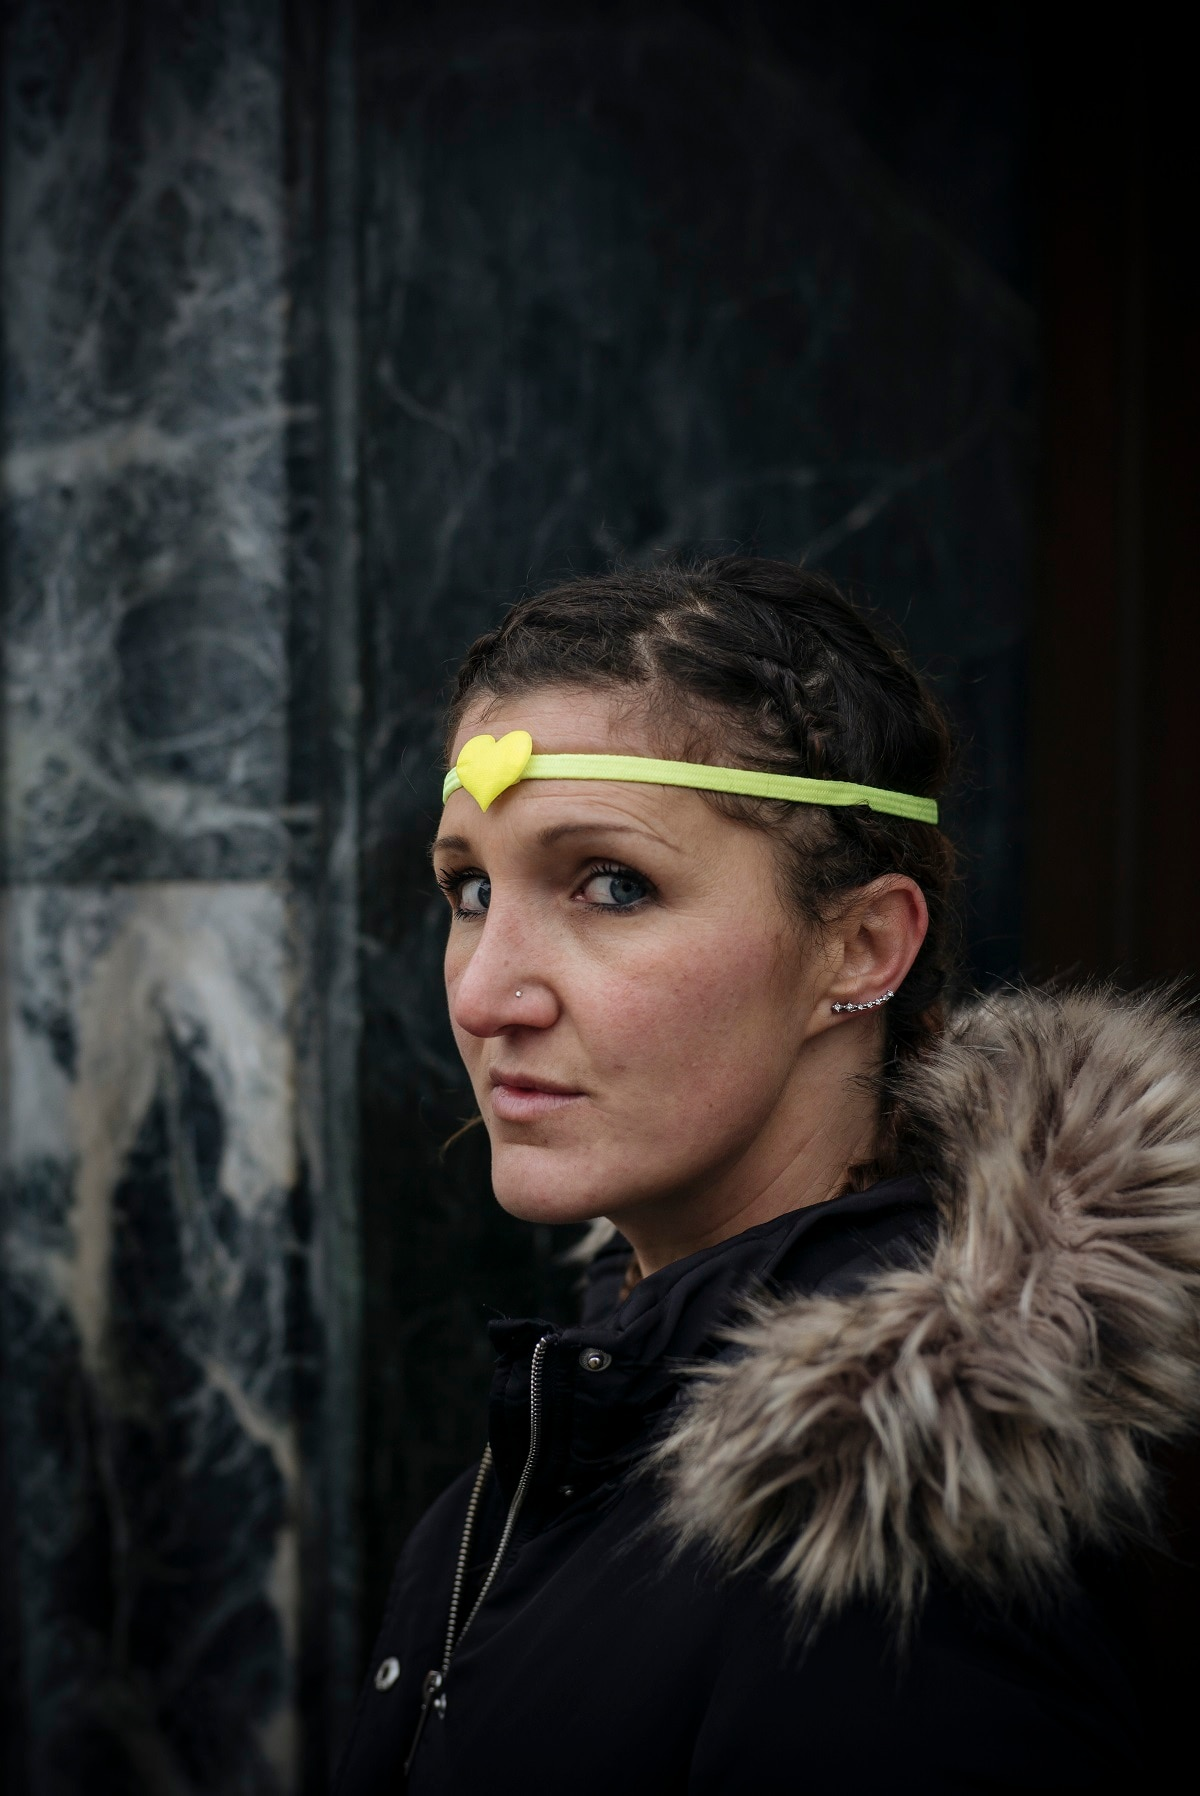 Cecile, 40, personal care assistant, from the Val d'Oise region, north of Paris, poses for a portrait during a demonstration by yellow vest protestors in Paris.(AP Photo/Kamil Zihnioglu)